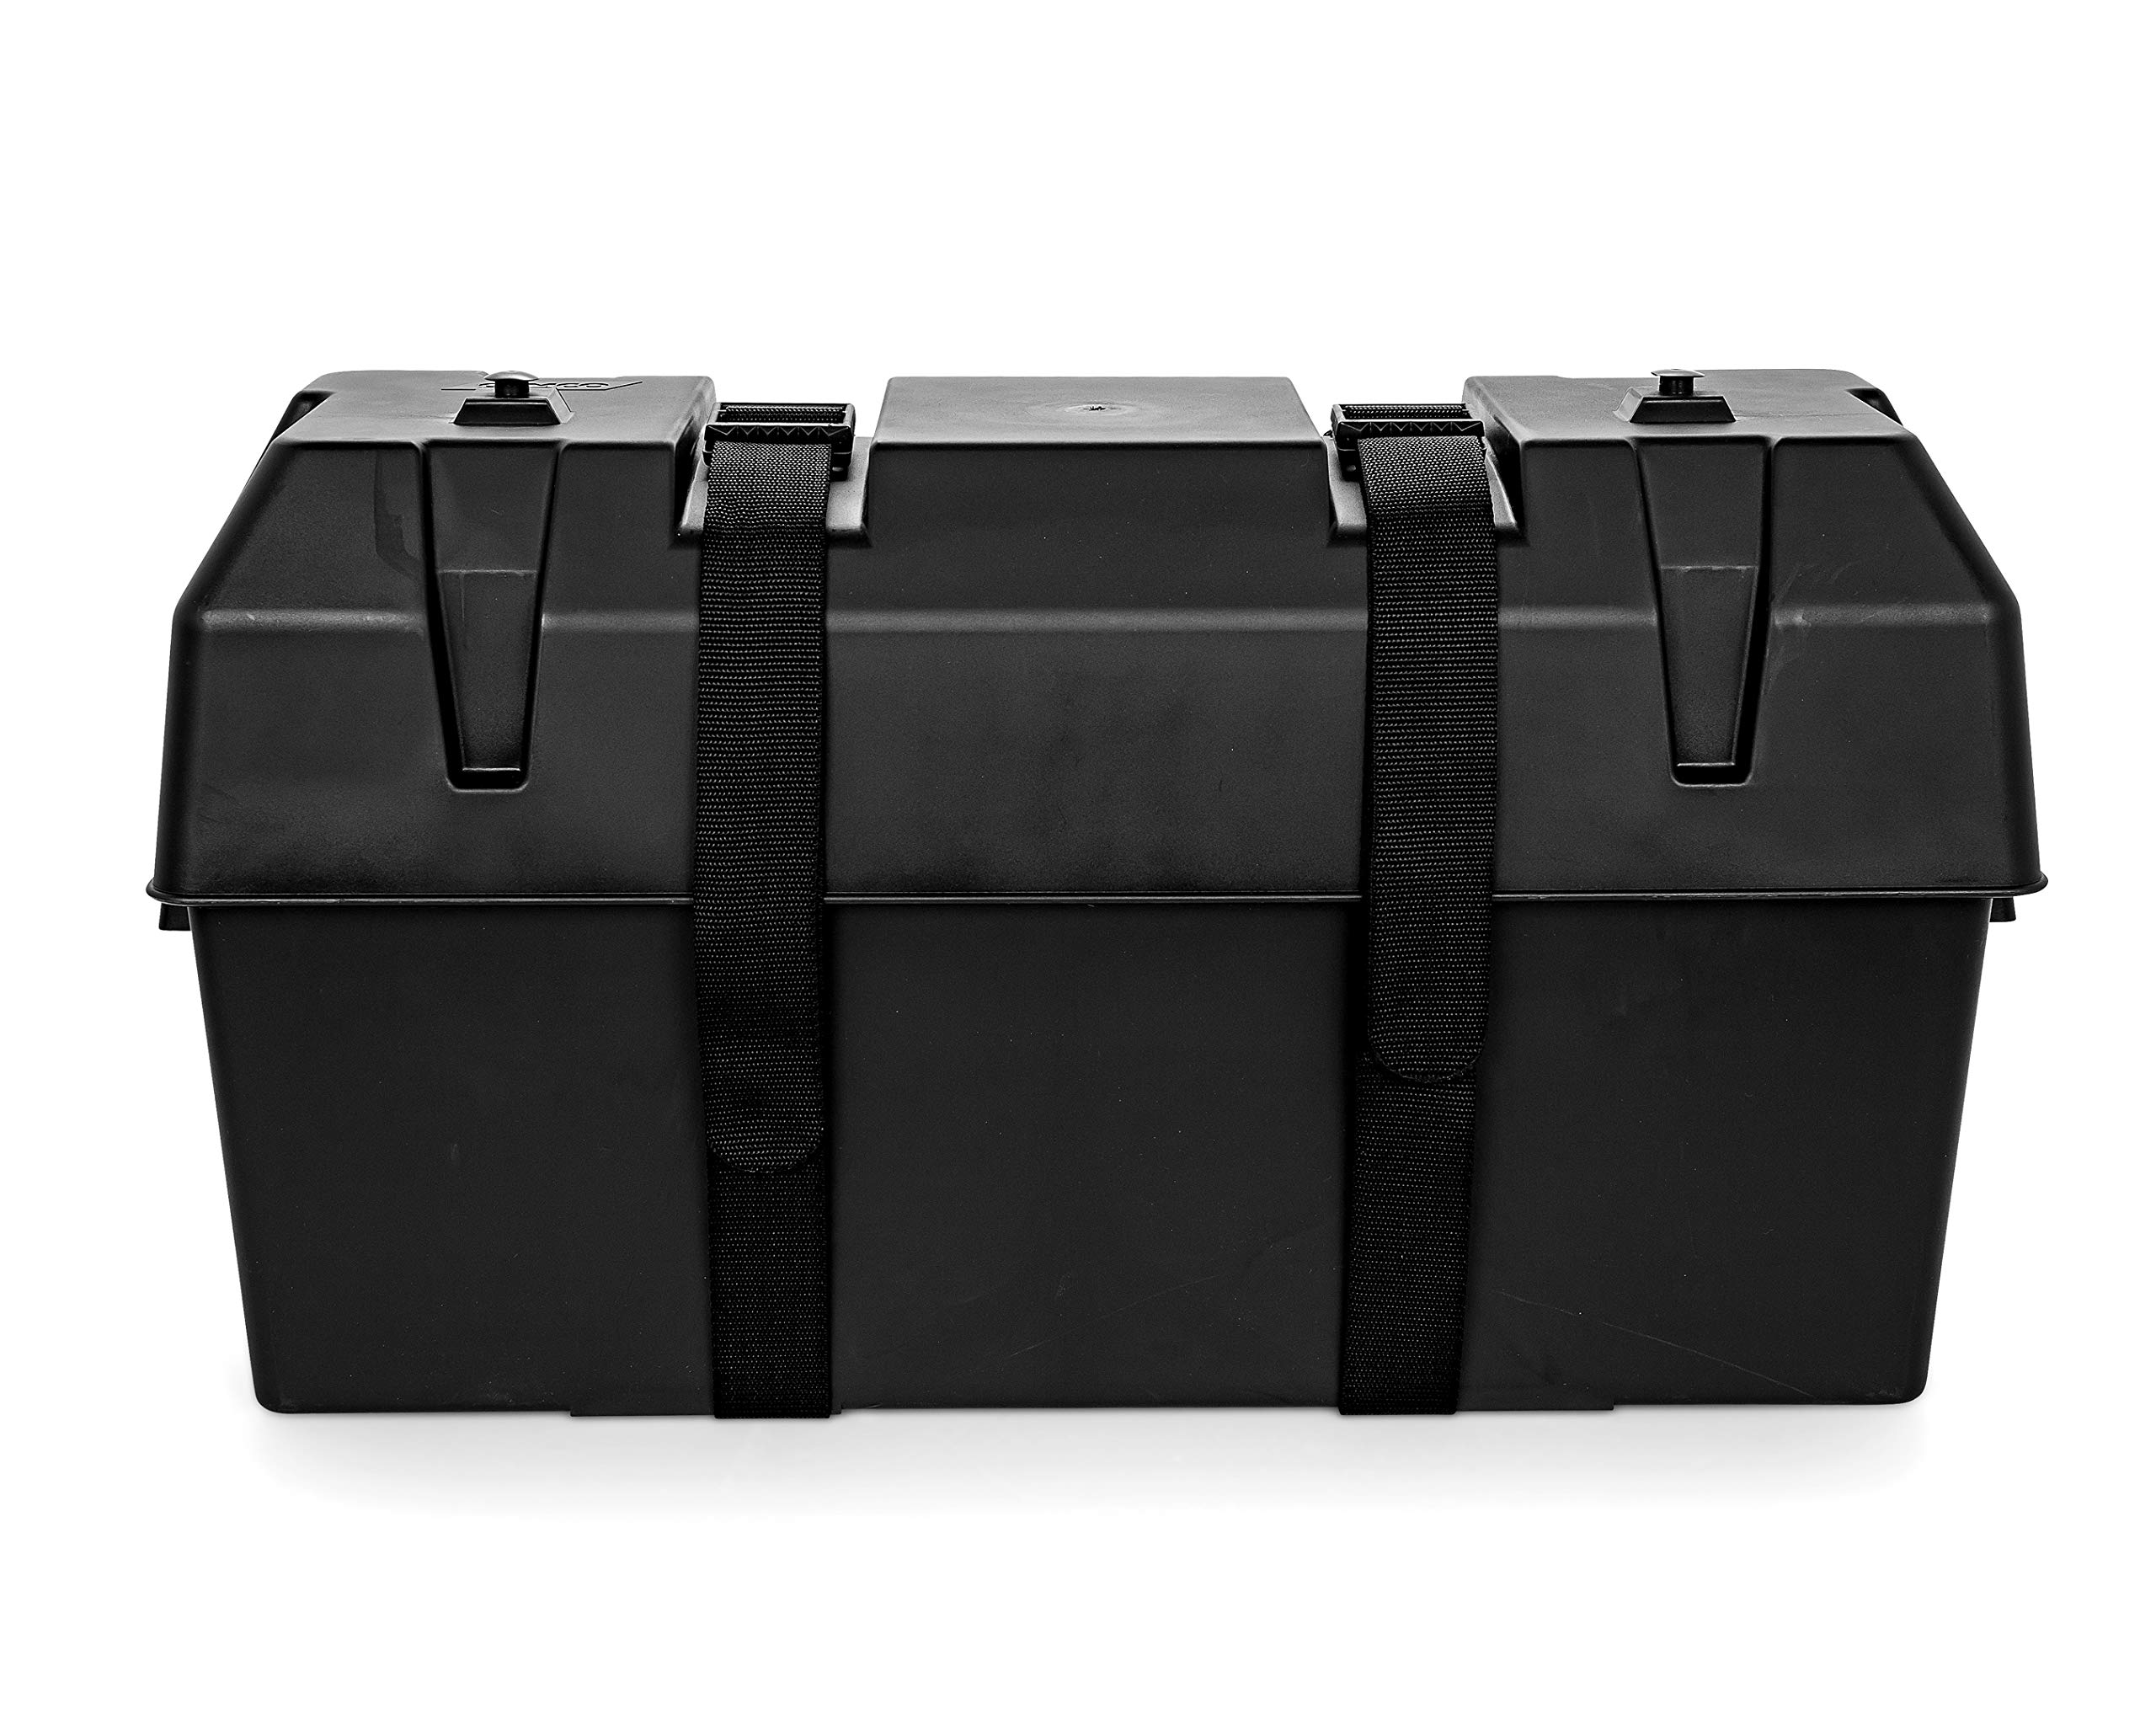 Camco Heavy Duty Double Battery Box with Straps and Hardware - Group GC2 | Safely Stores RV, Automotive, and Marine Batteries |Durable Anti-Corrosion Material | Measures 21.5'' x 7.4'' x 11.2'' - (55374) by Camco